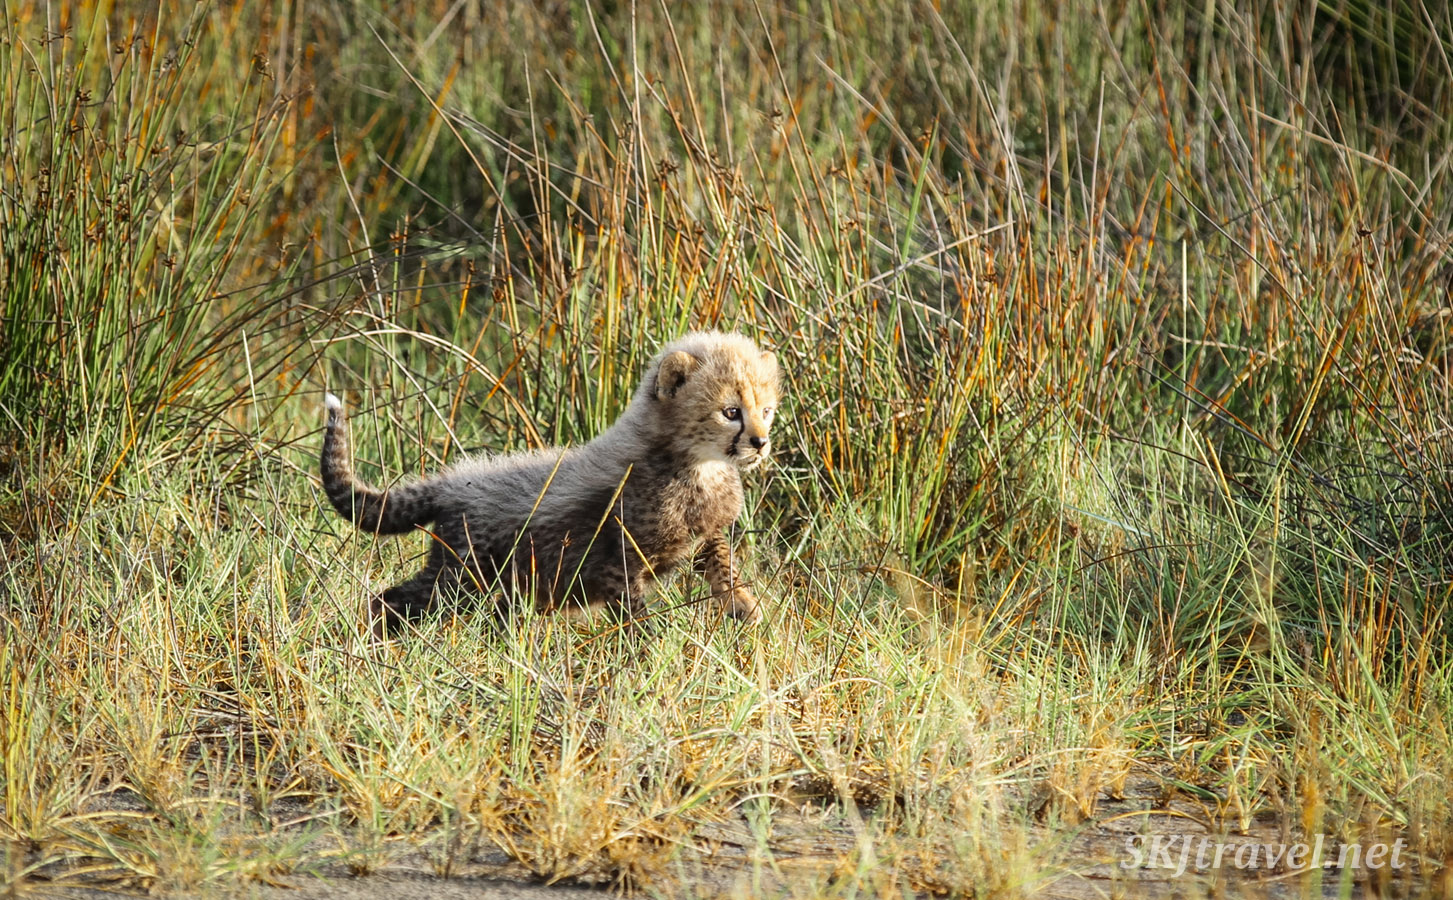 Baby cheetah cub practicing stalking skills in marsh reeds. Ndutu, Tanzania.